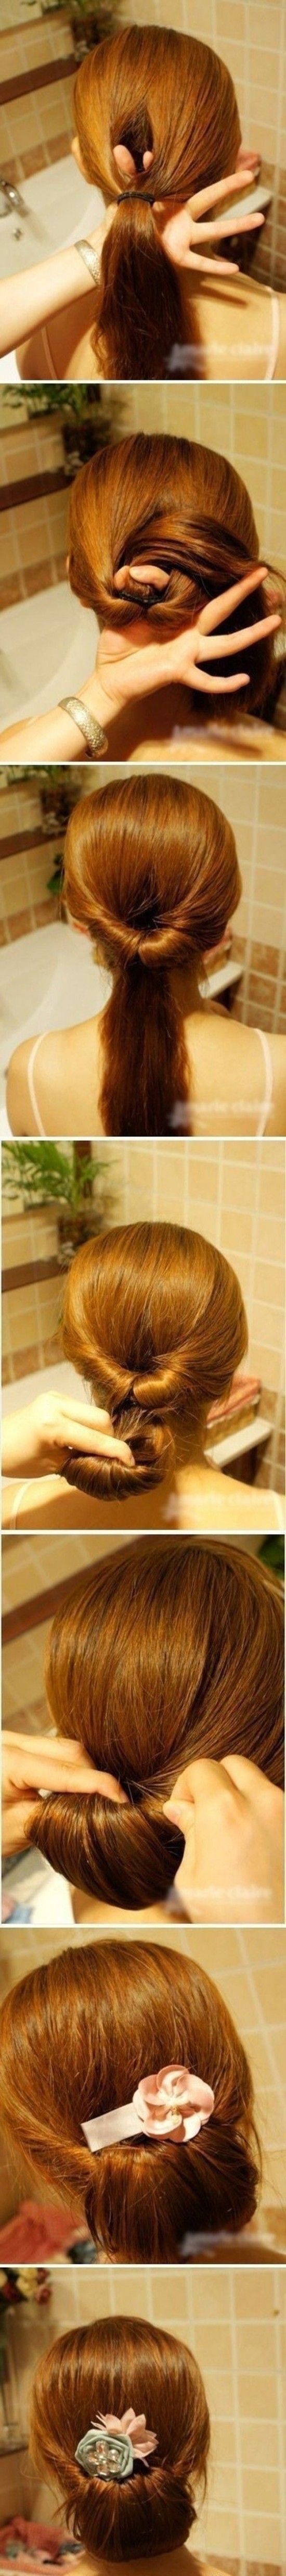 Creative Hairstyles That You Can Easily Do at Home (27 Photos)